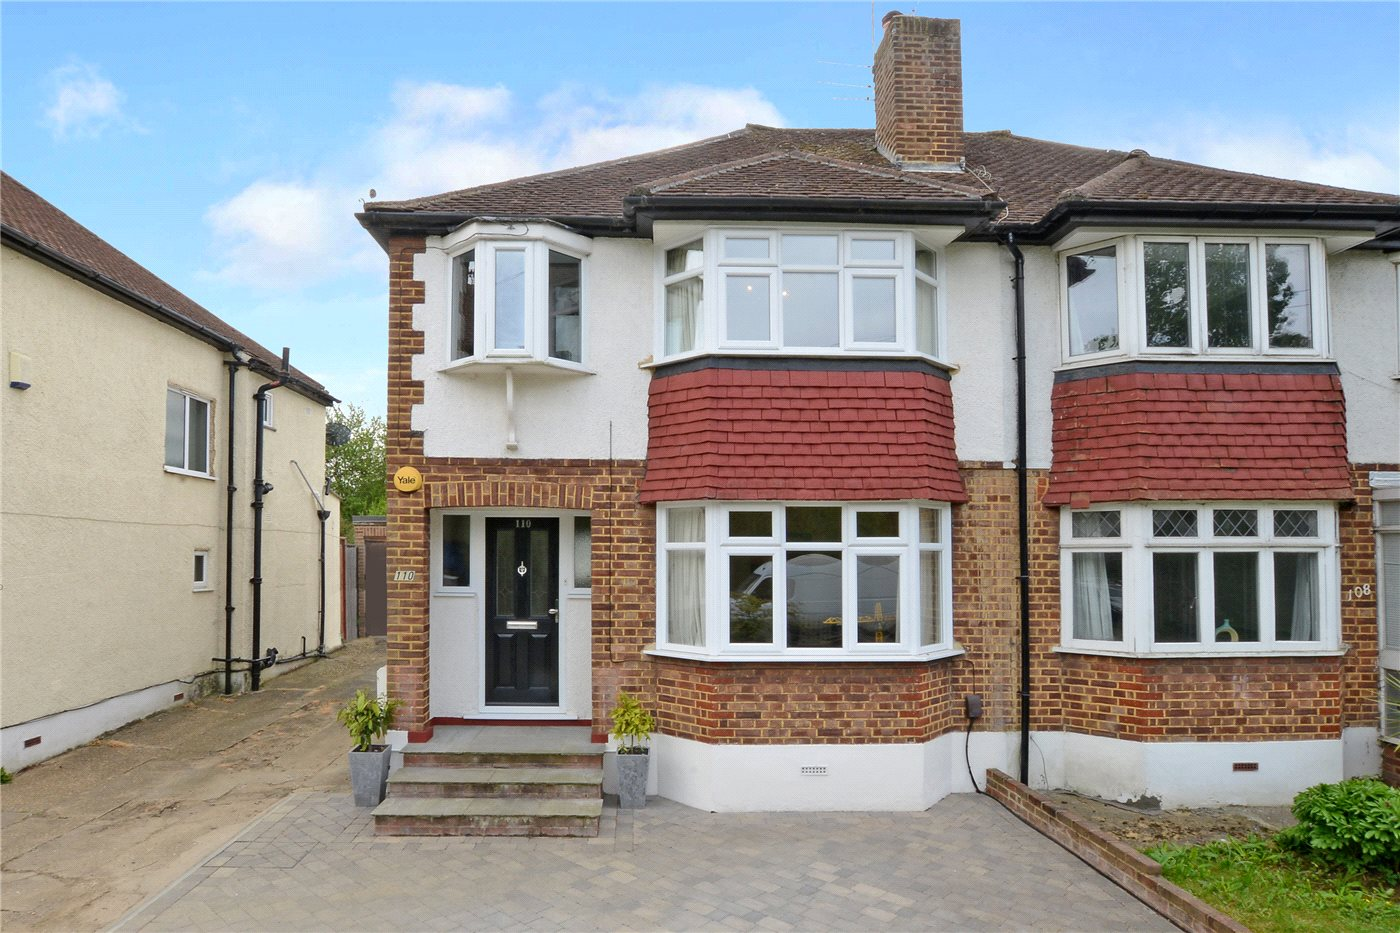 3 Bedrooms Semi Detached House for sale in Worcester Park Road, Worcester Park, Surrey, KT4